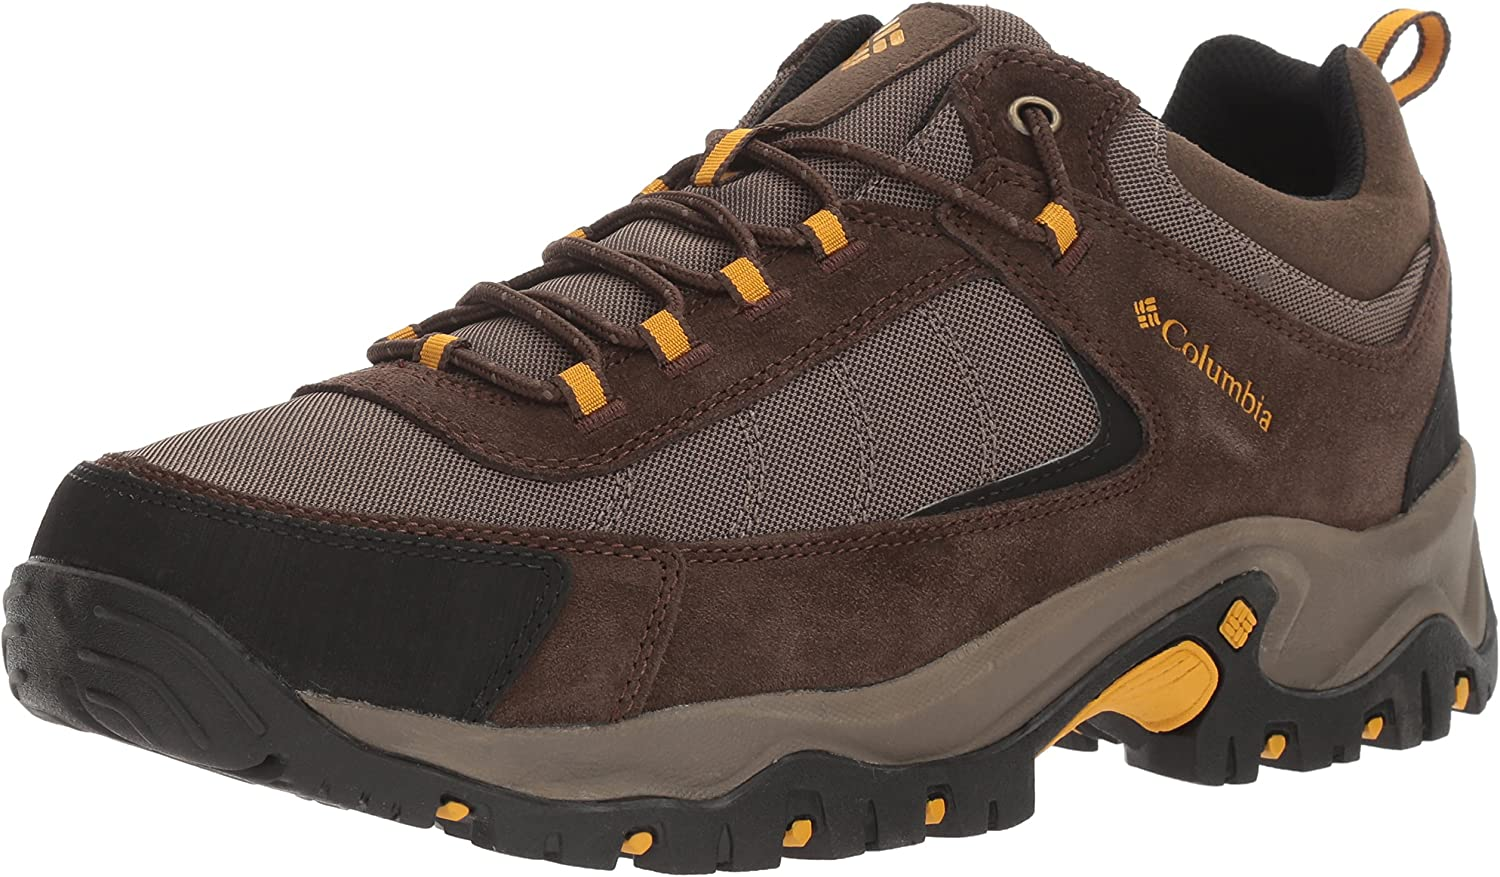 Columbia Men s Granite Ridge Waterproof Boot, Breathable, Microfleece Lining